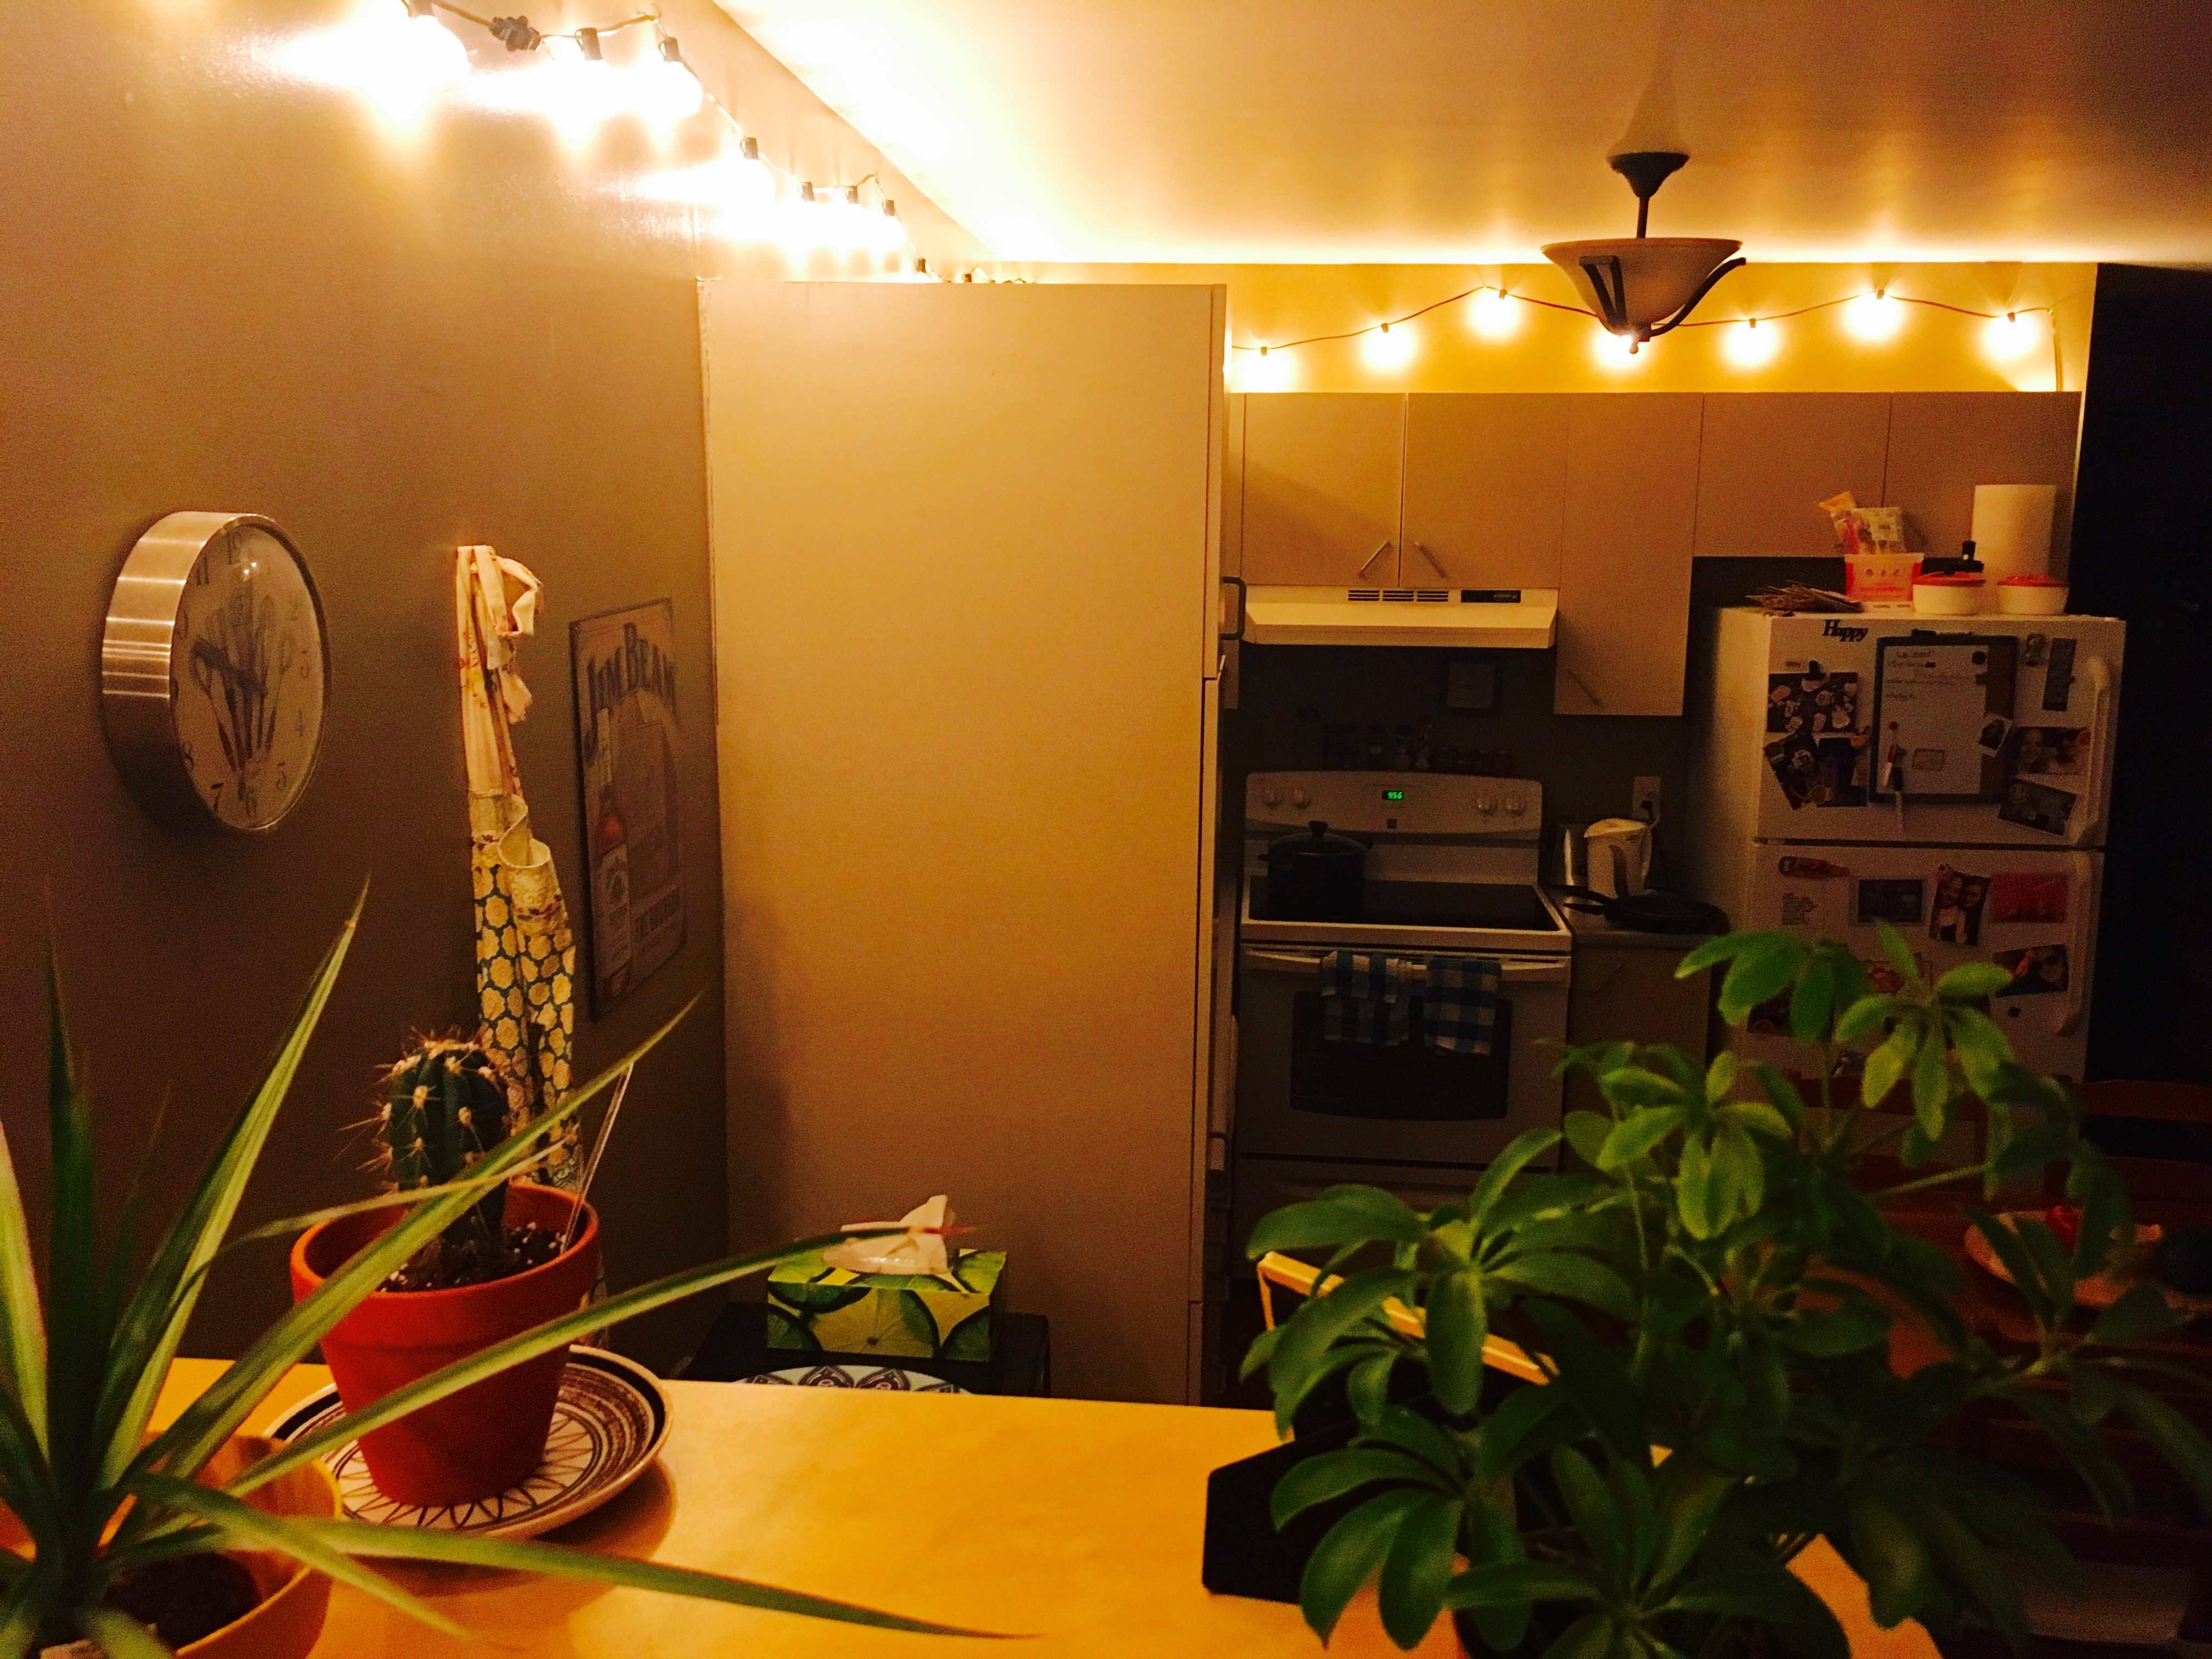 String lights hanging along kitchen walls with plants in the foreground